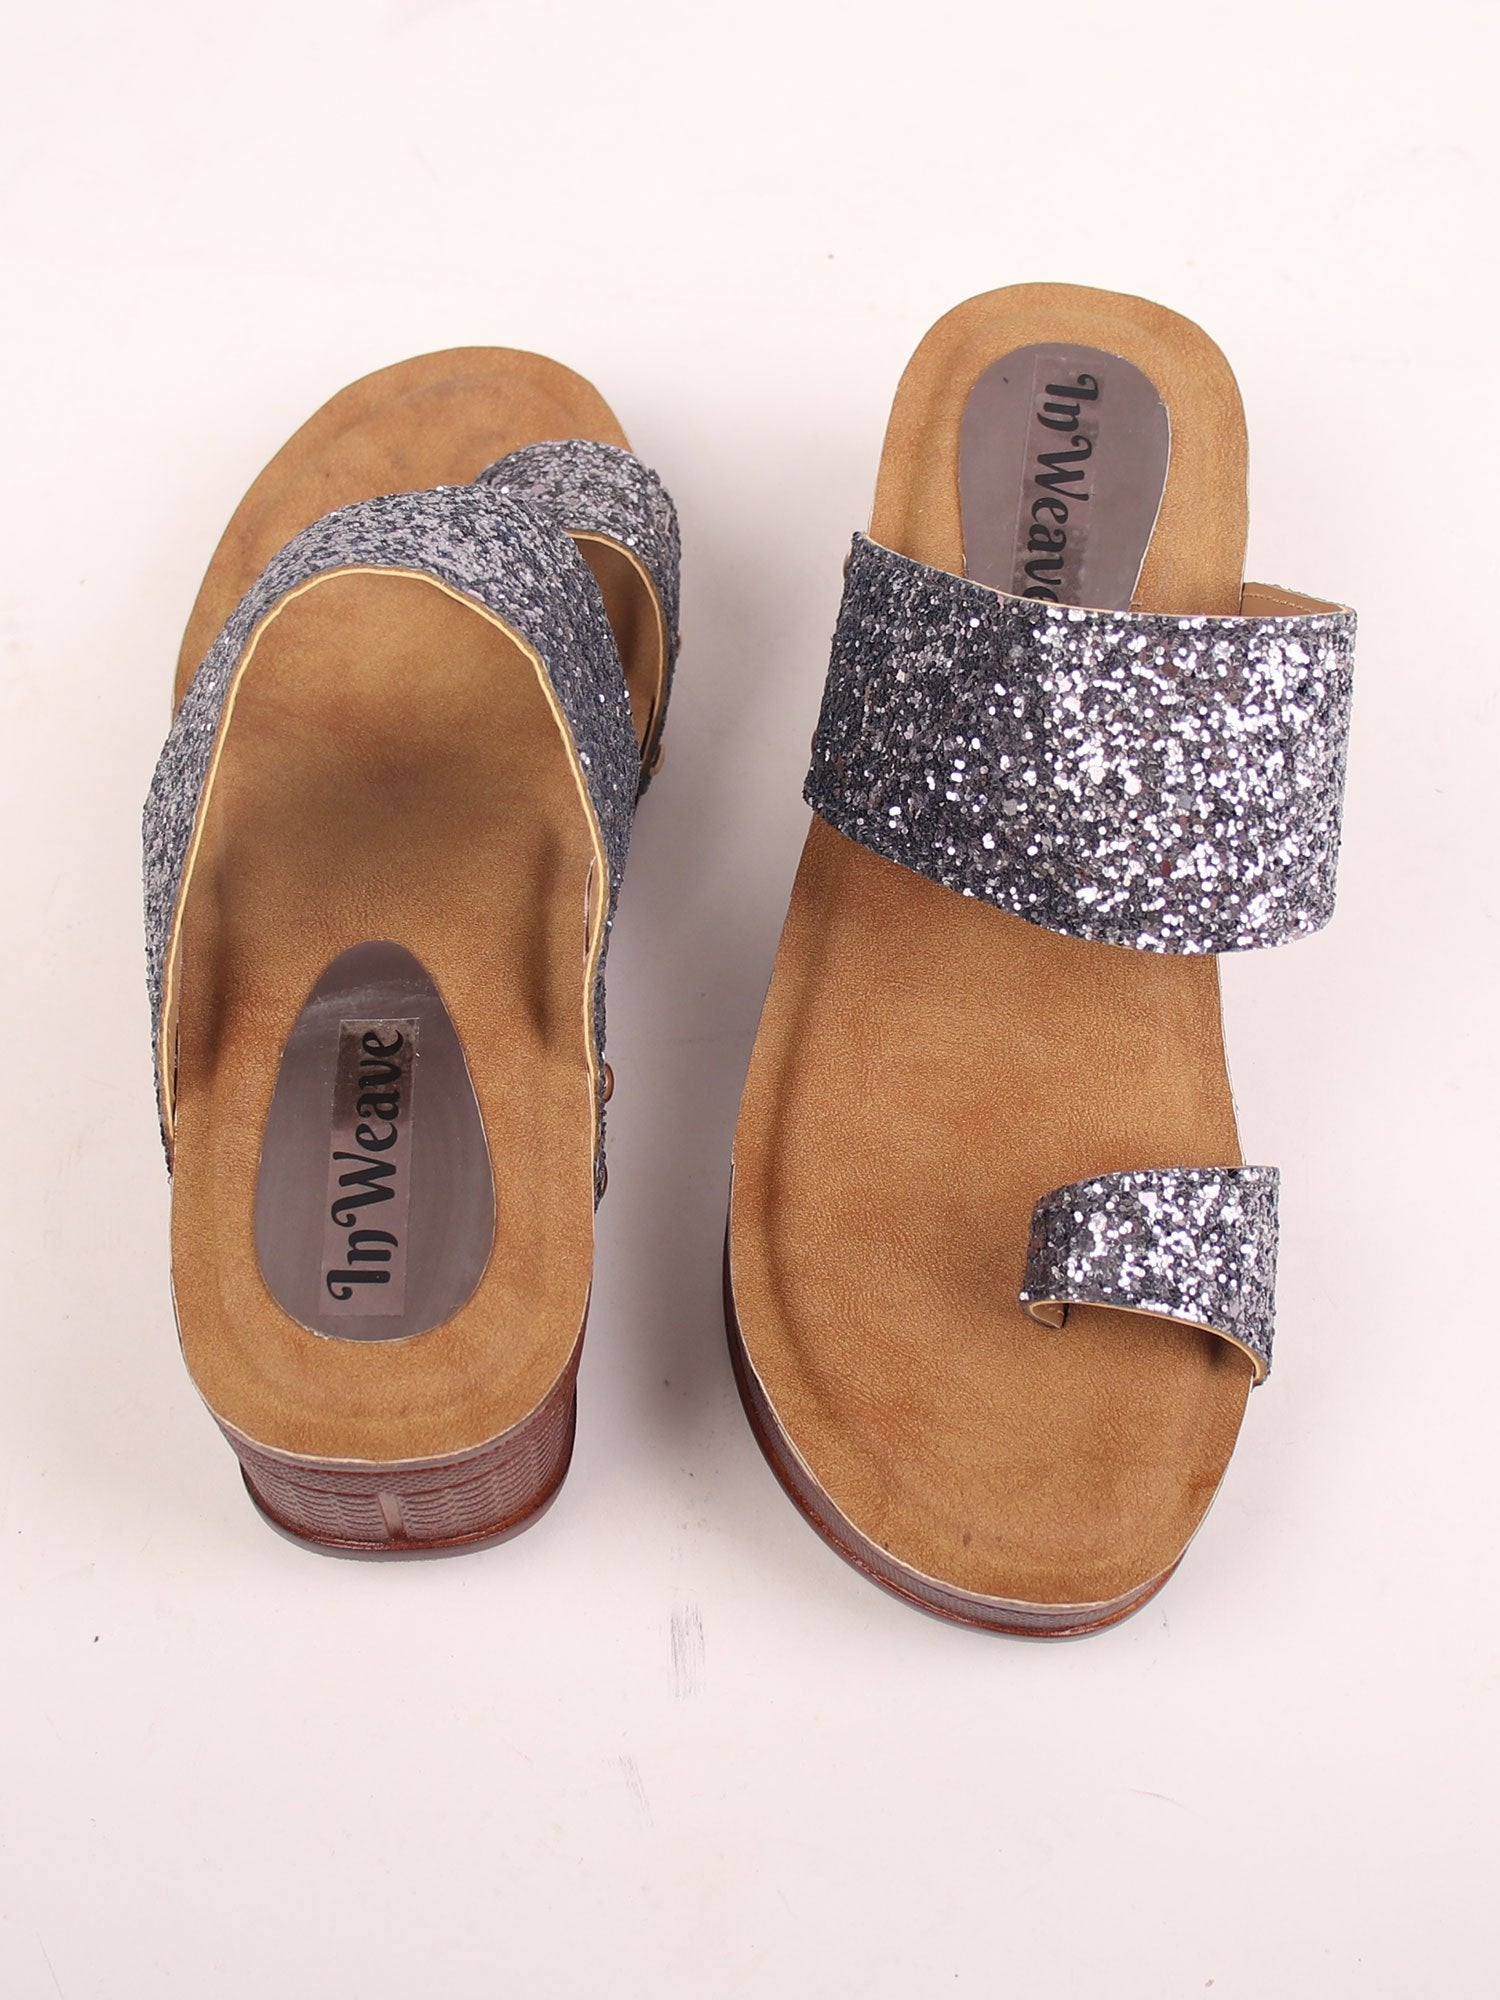 SEQUIN STUDDED WEDGES IN METALLIC GREY